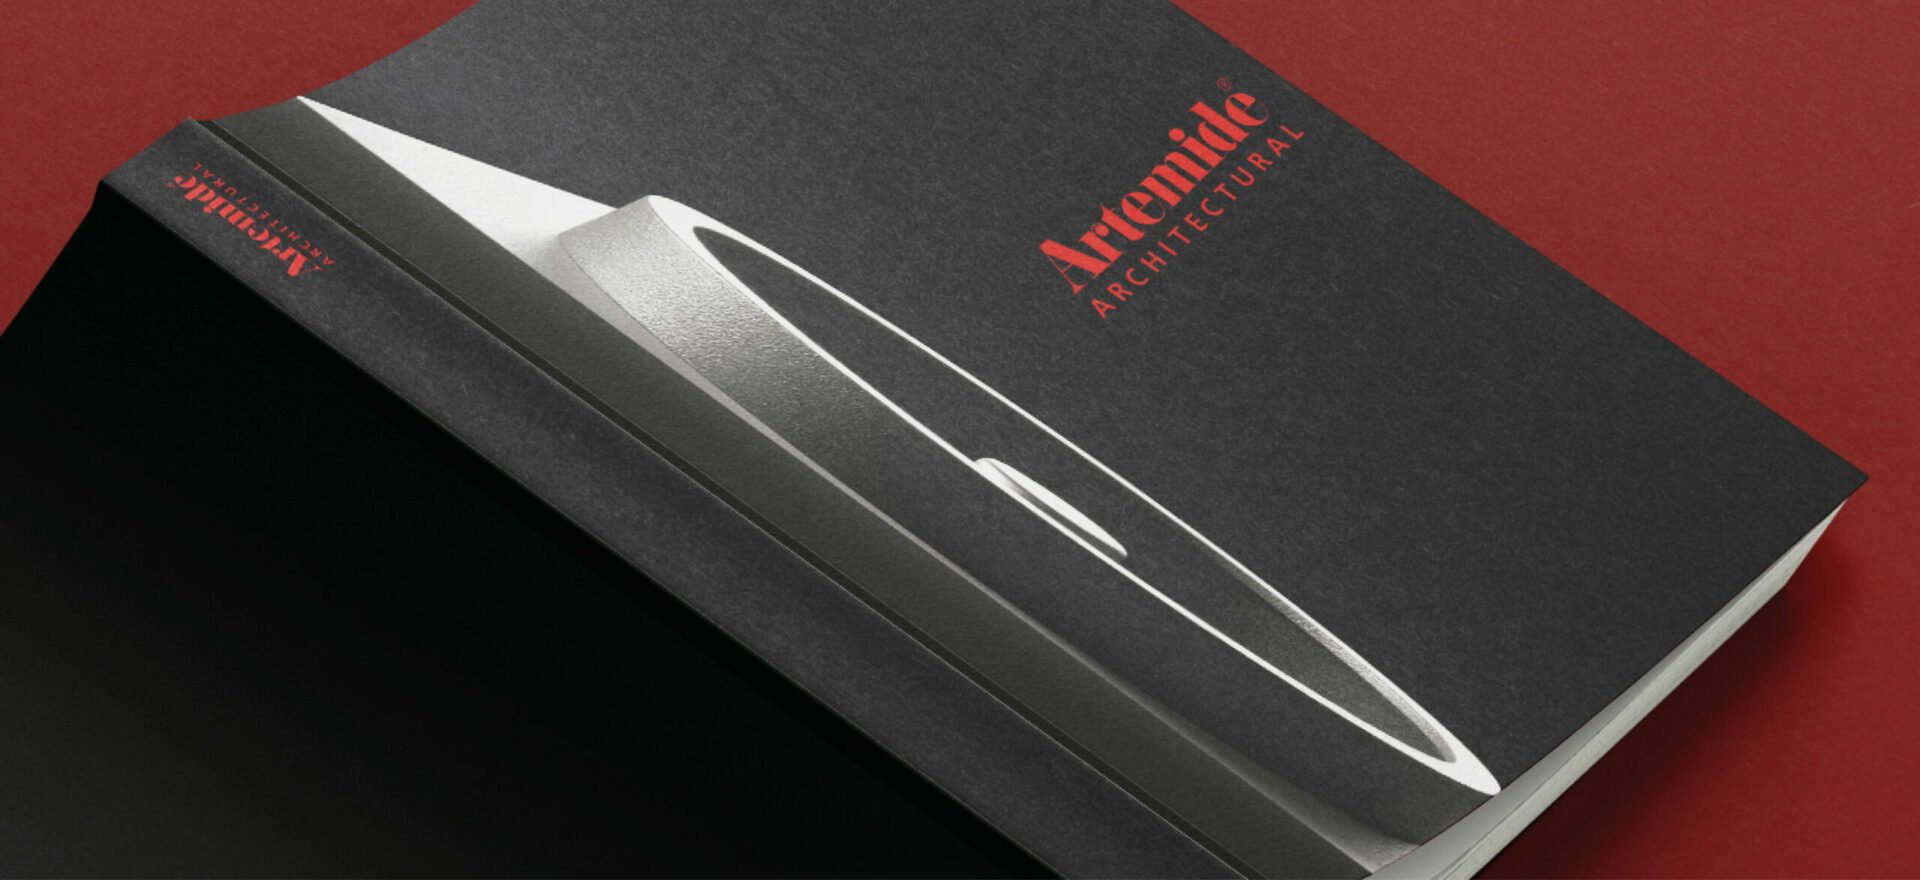 Greyscale Catalog for Artemide Architectural, light design with Logo in red color in a red background.